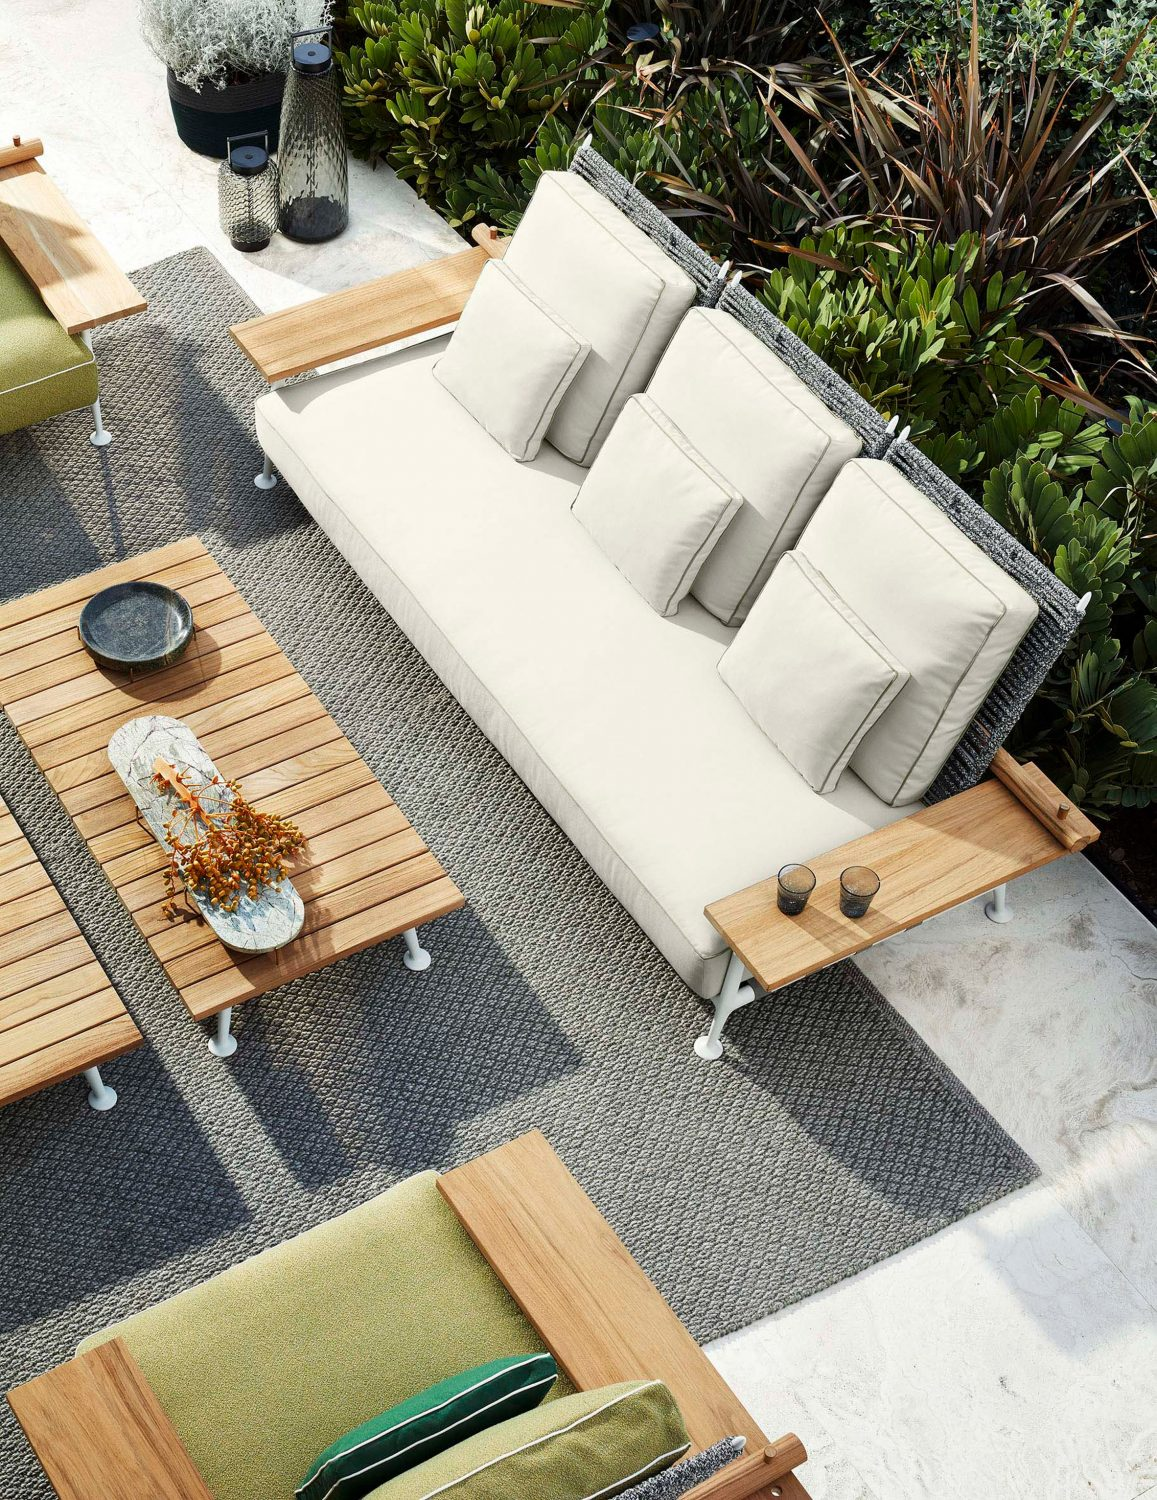 Cassina Unveils Outdoor Furniture Collection cassina Cassina Unveils Outdoor Furniture Collection cassina unveils outdoor furniture collection 5 scaled